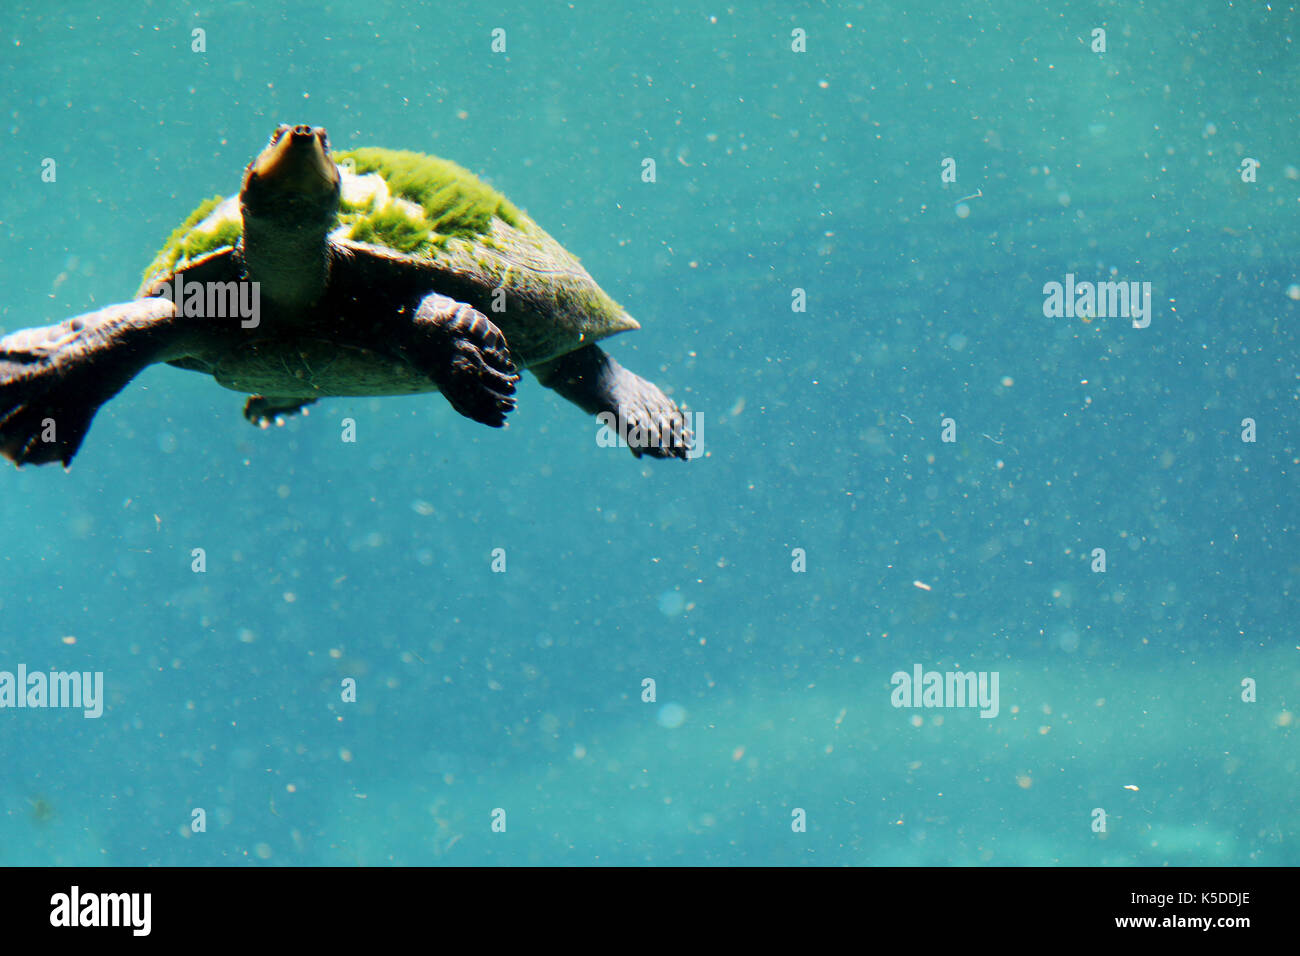 algae and aquatic turtles relationship